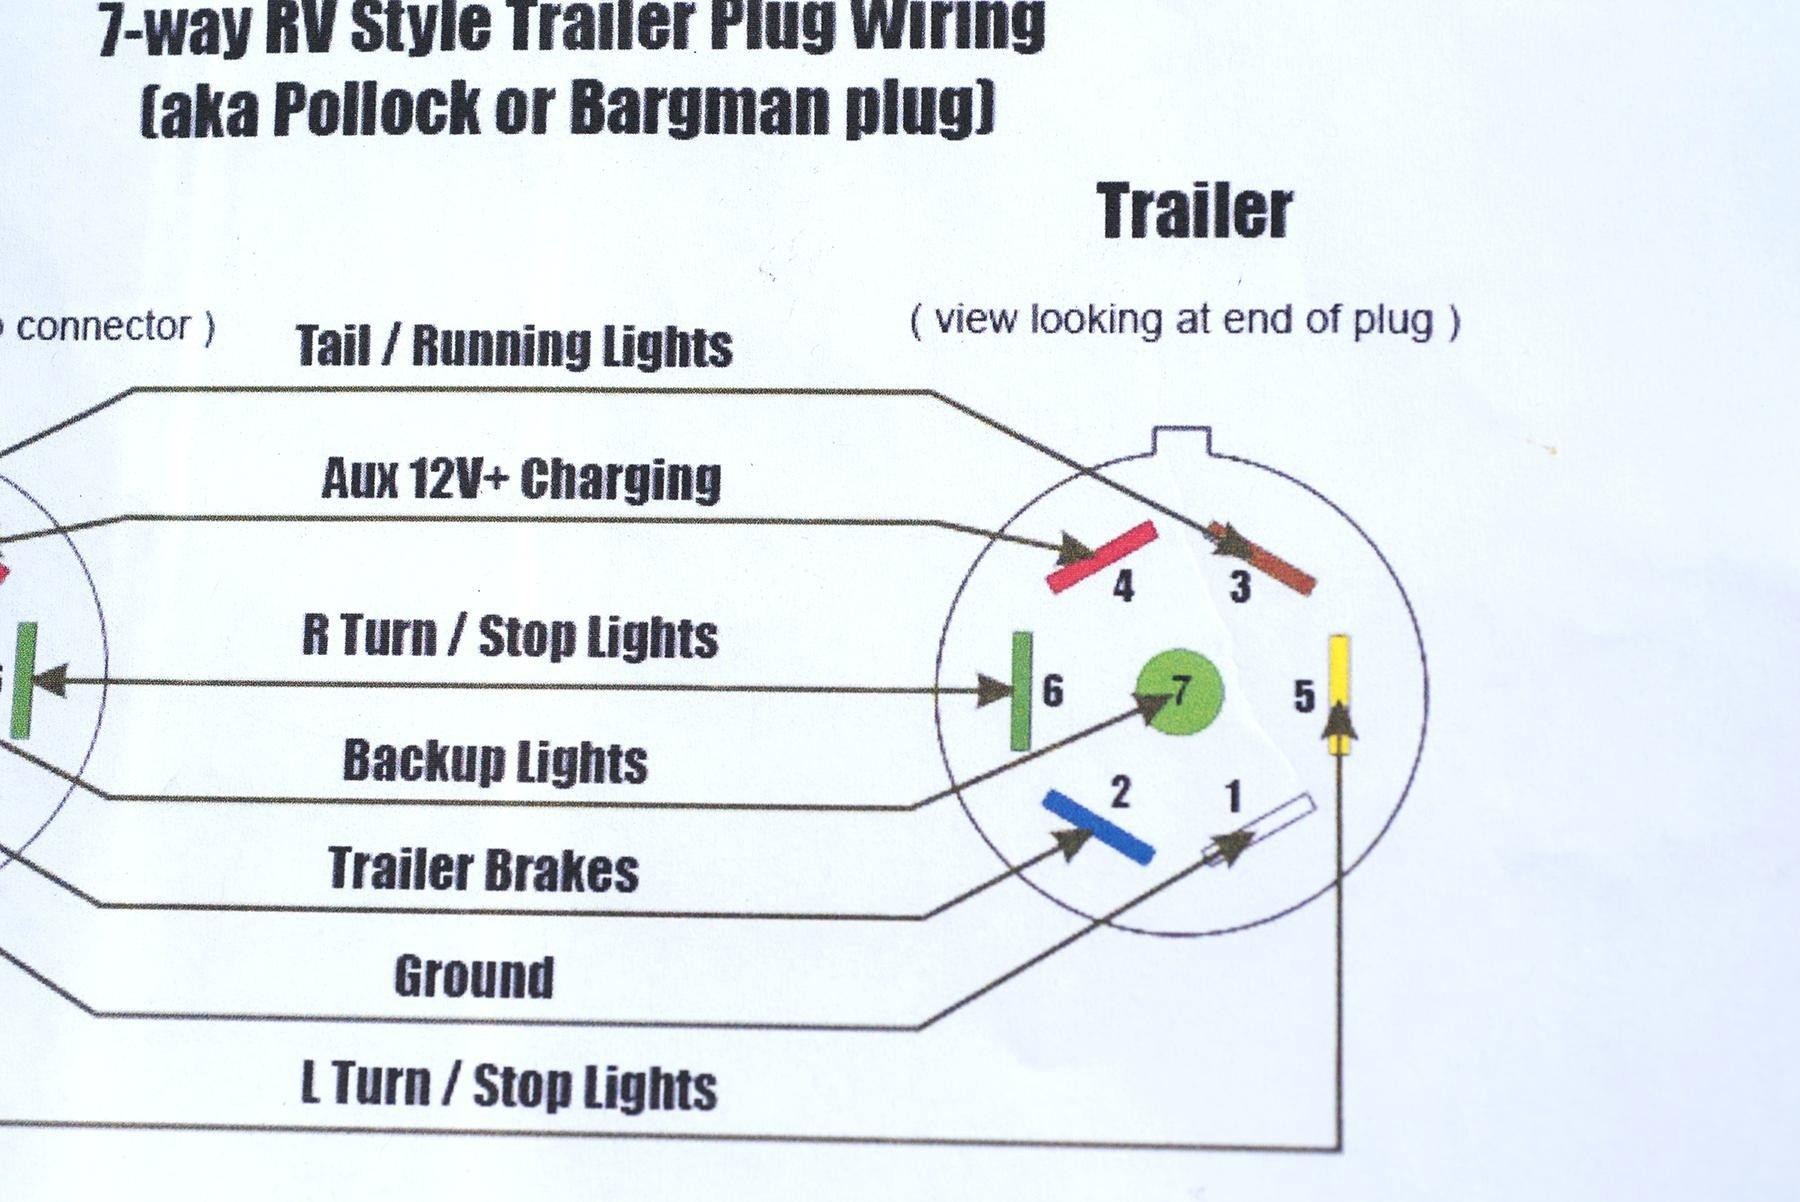 7 Wire Trailer Plug Diagram Rv Trailer Plug Wiring Diagram Download Of 7 Wire Trailer Plug Diagram 7 Wire thermostat Wiring Diagram Sample